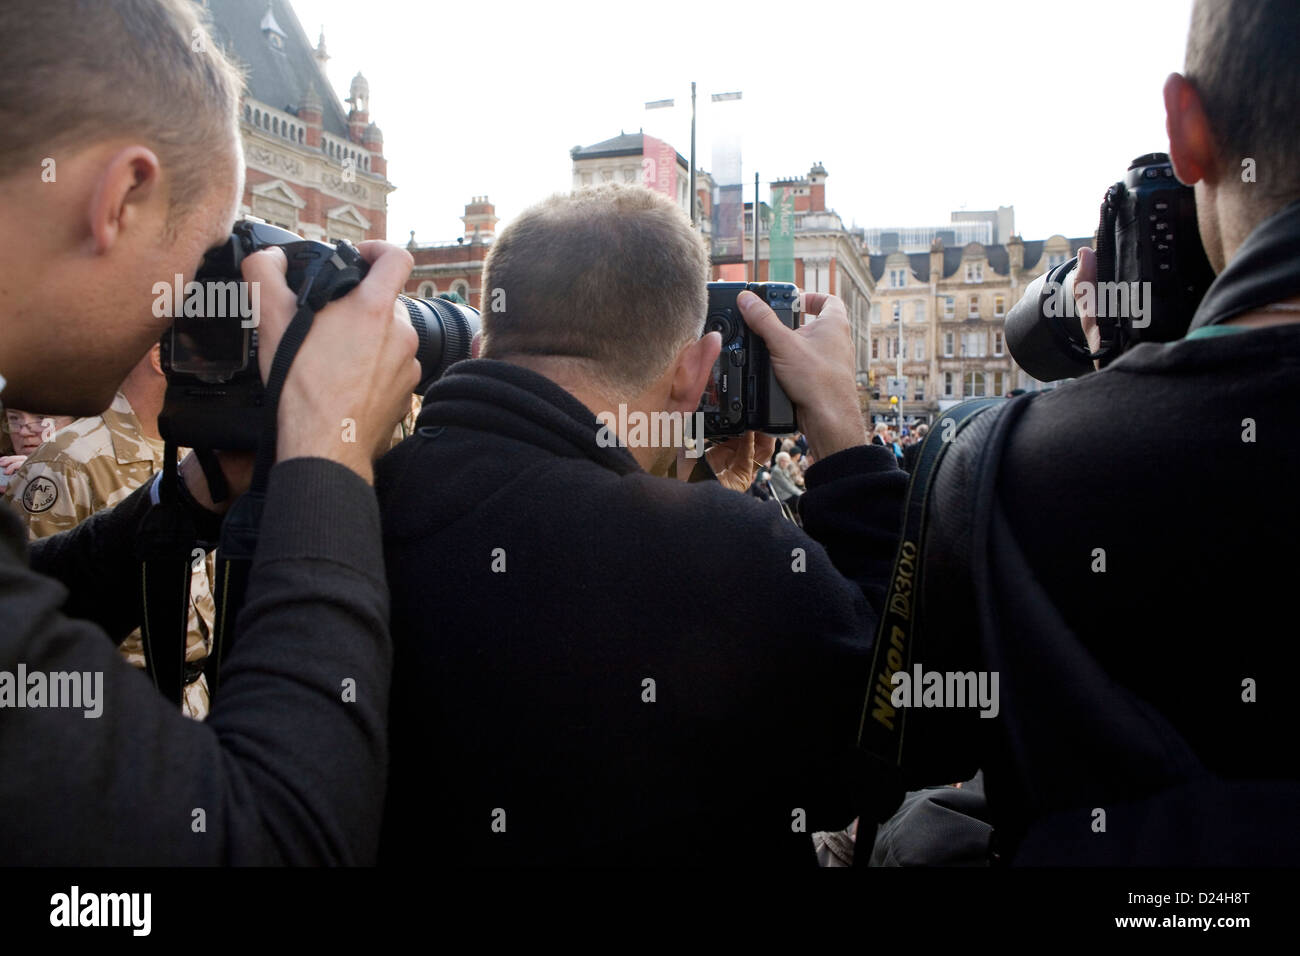 The backs of a group of photographers at a welcome home parade for British soldiers. Stock Photo